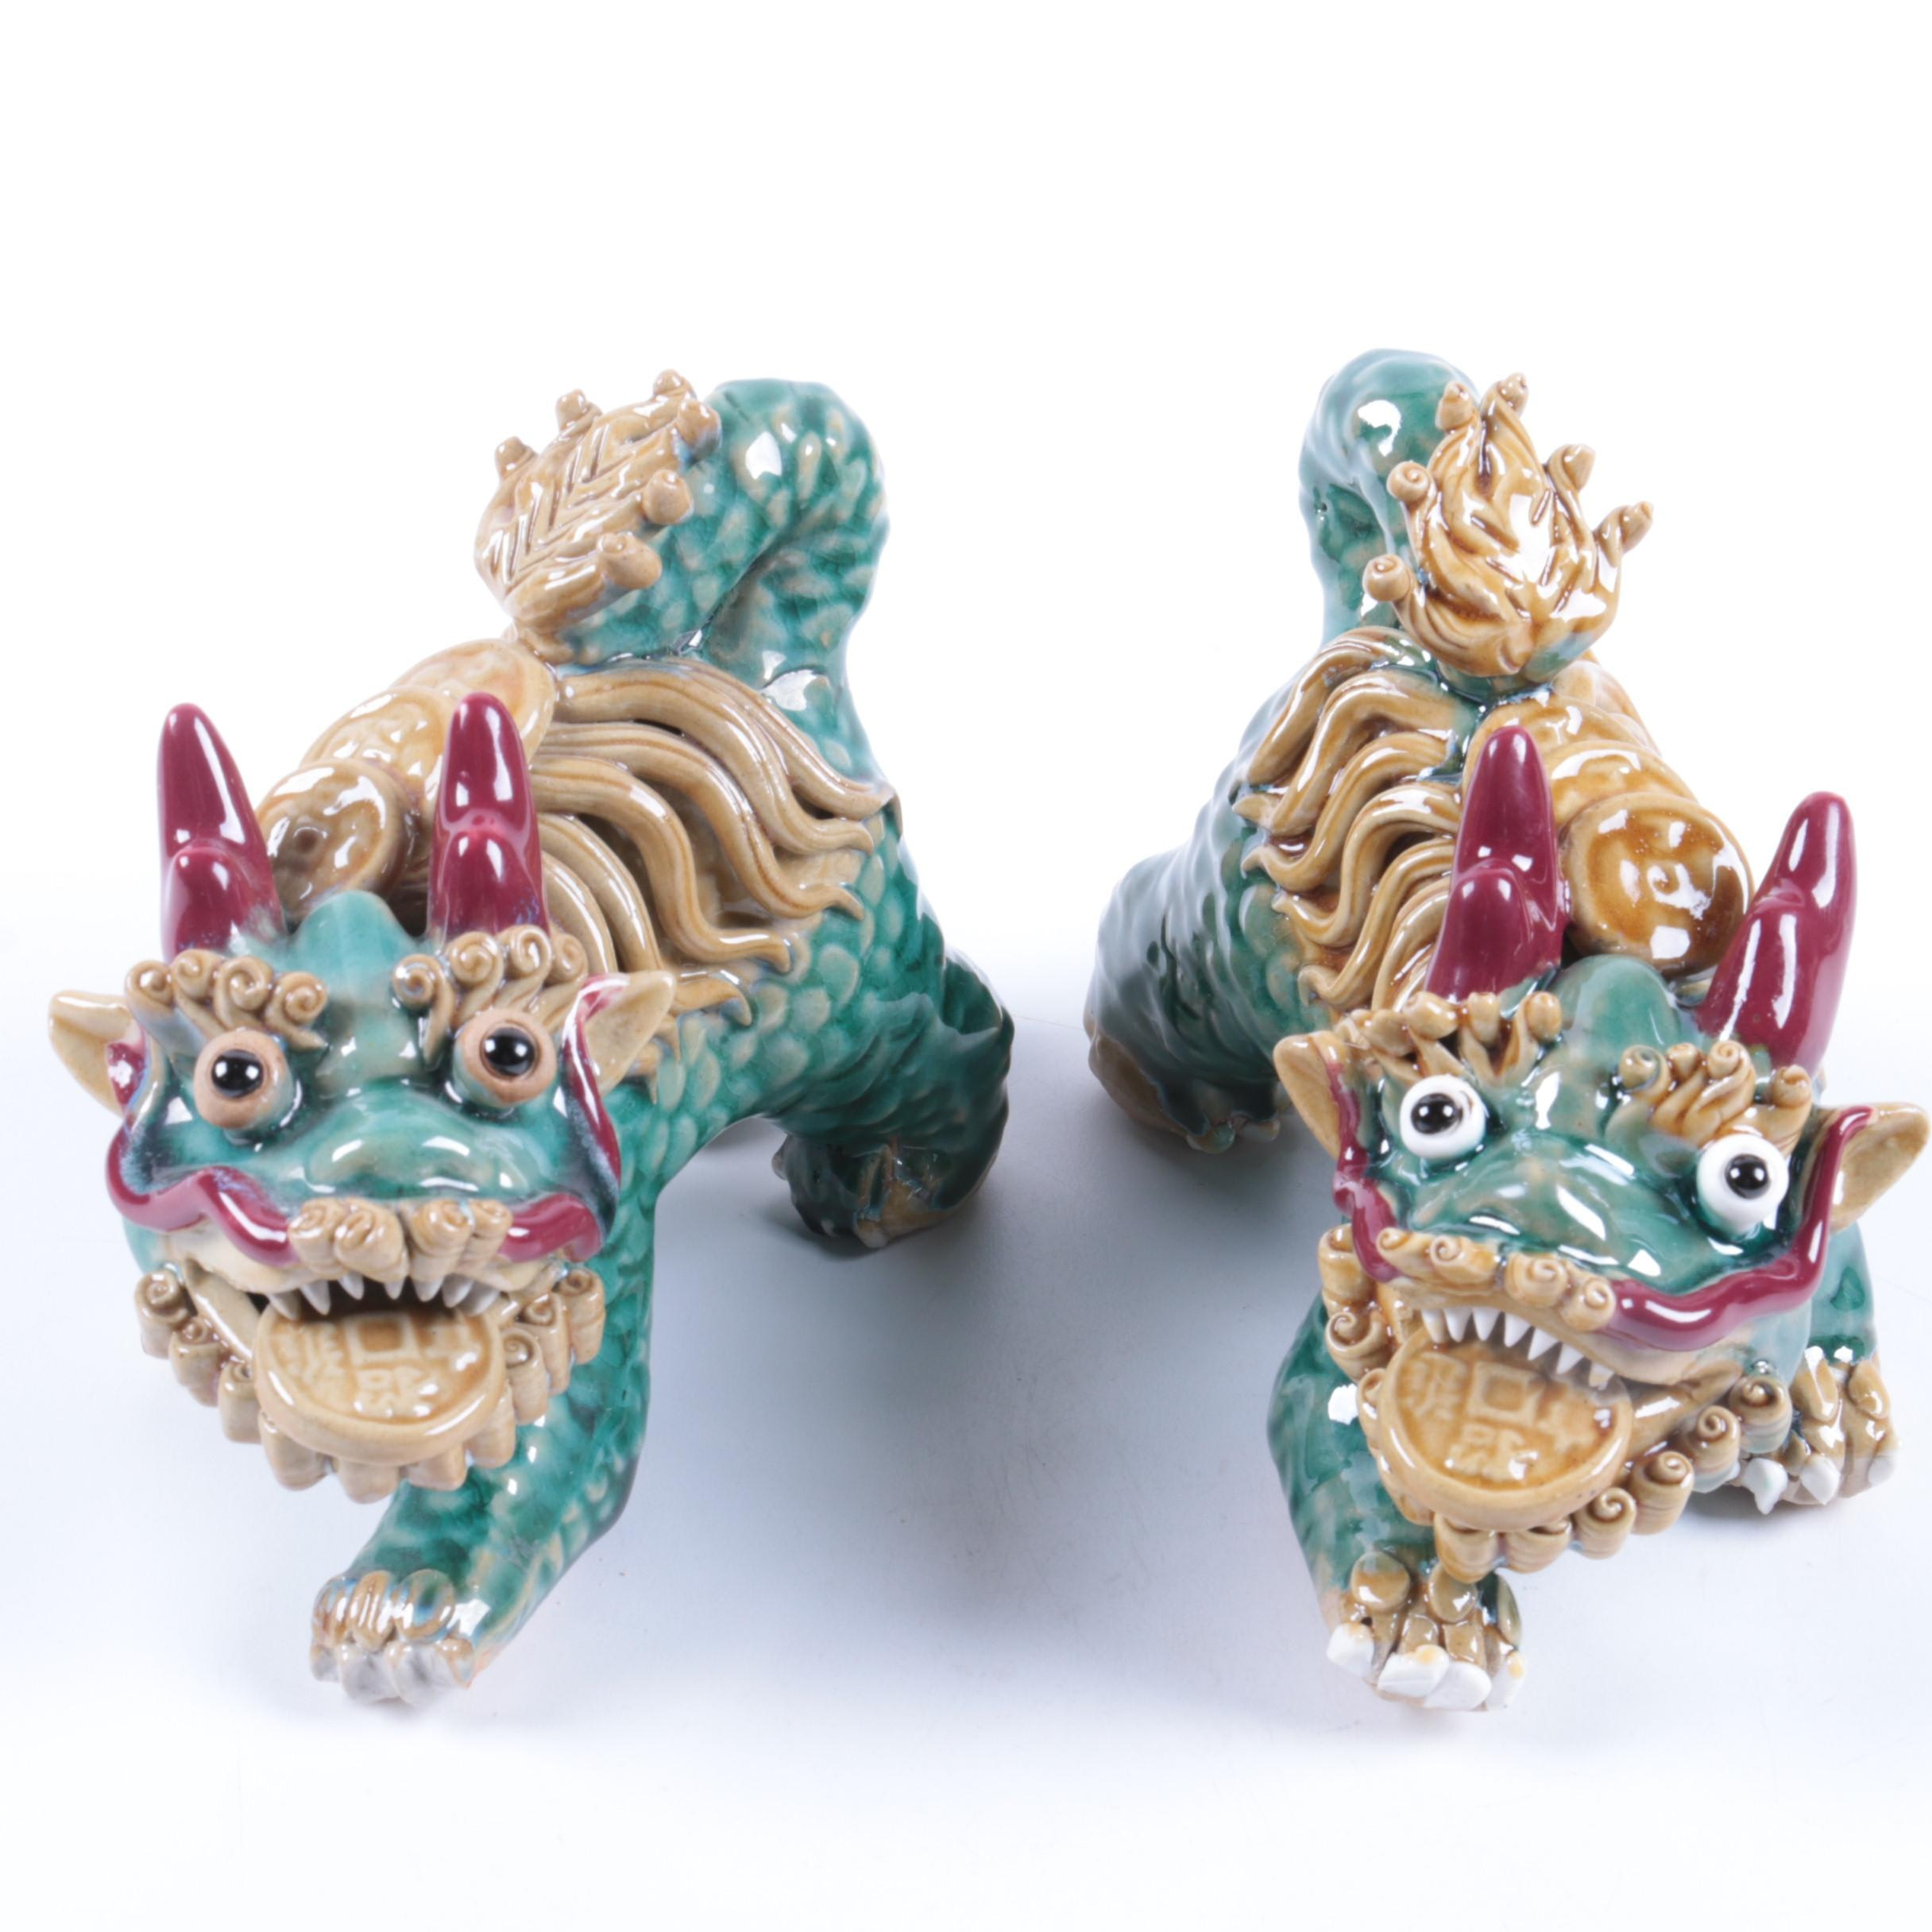 Chinese Ceramic Three-Glaze Good Fortune Guardian Lion Figurines